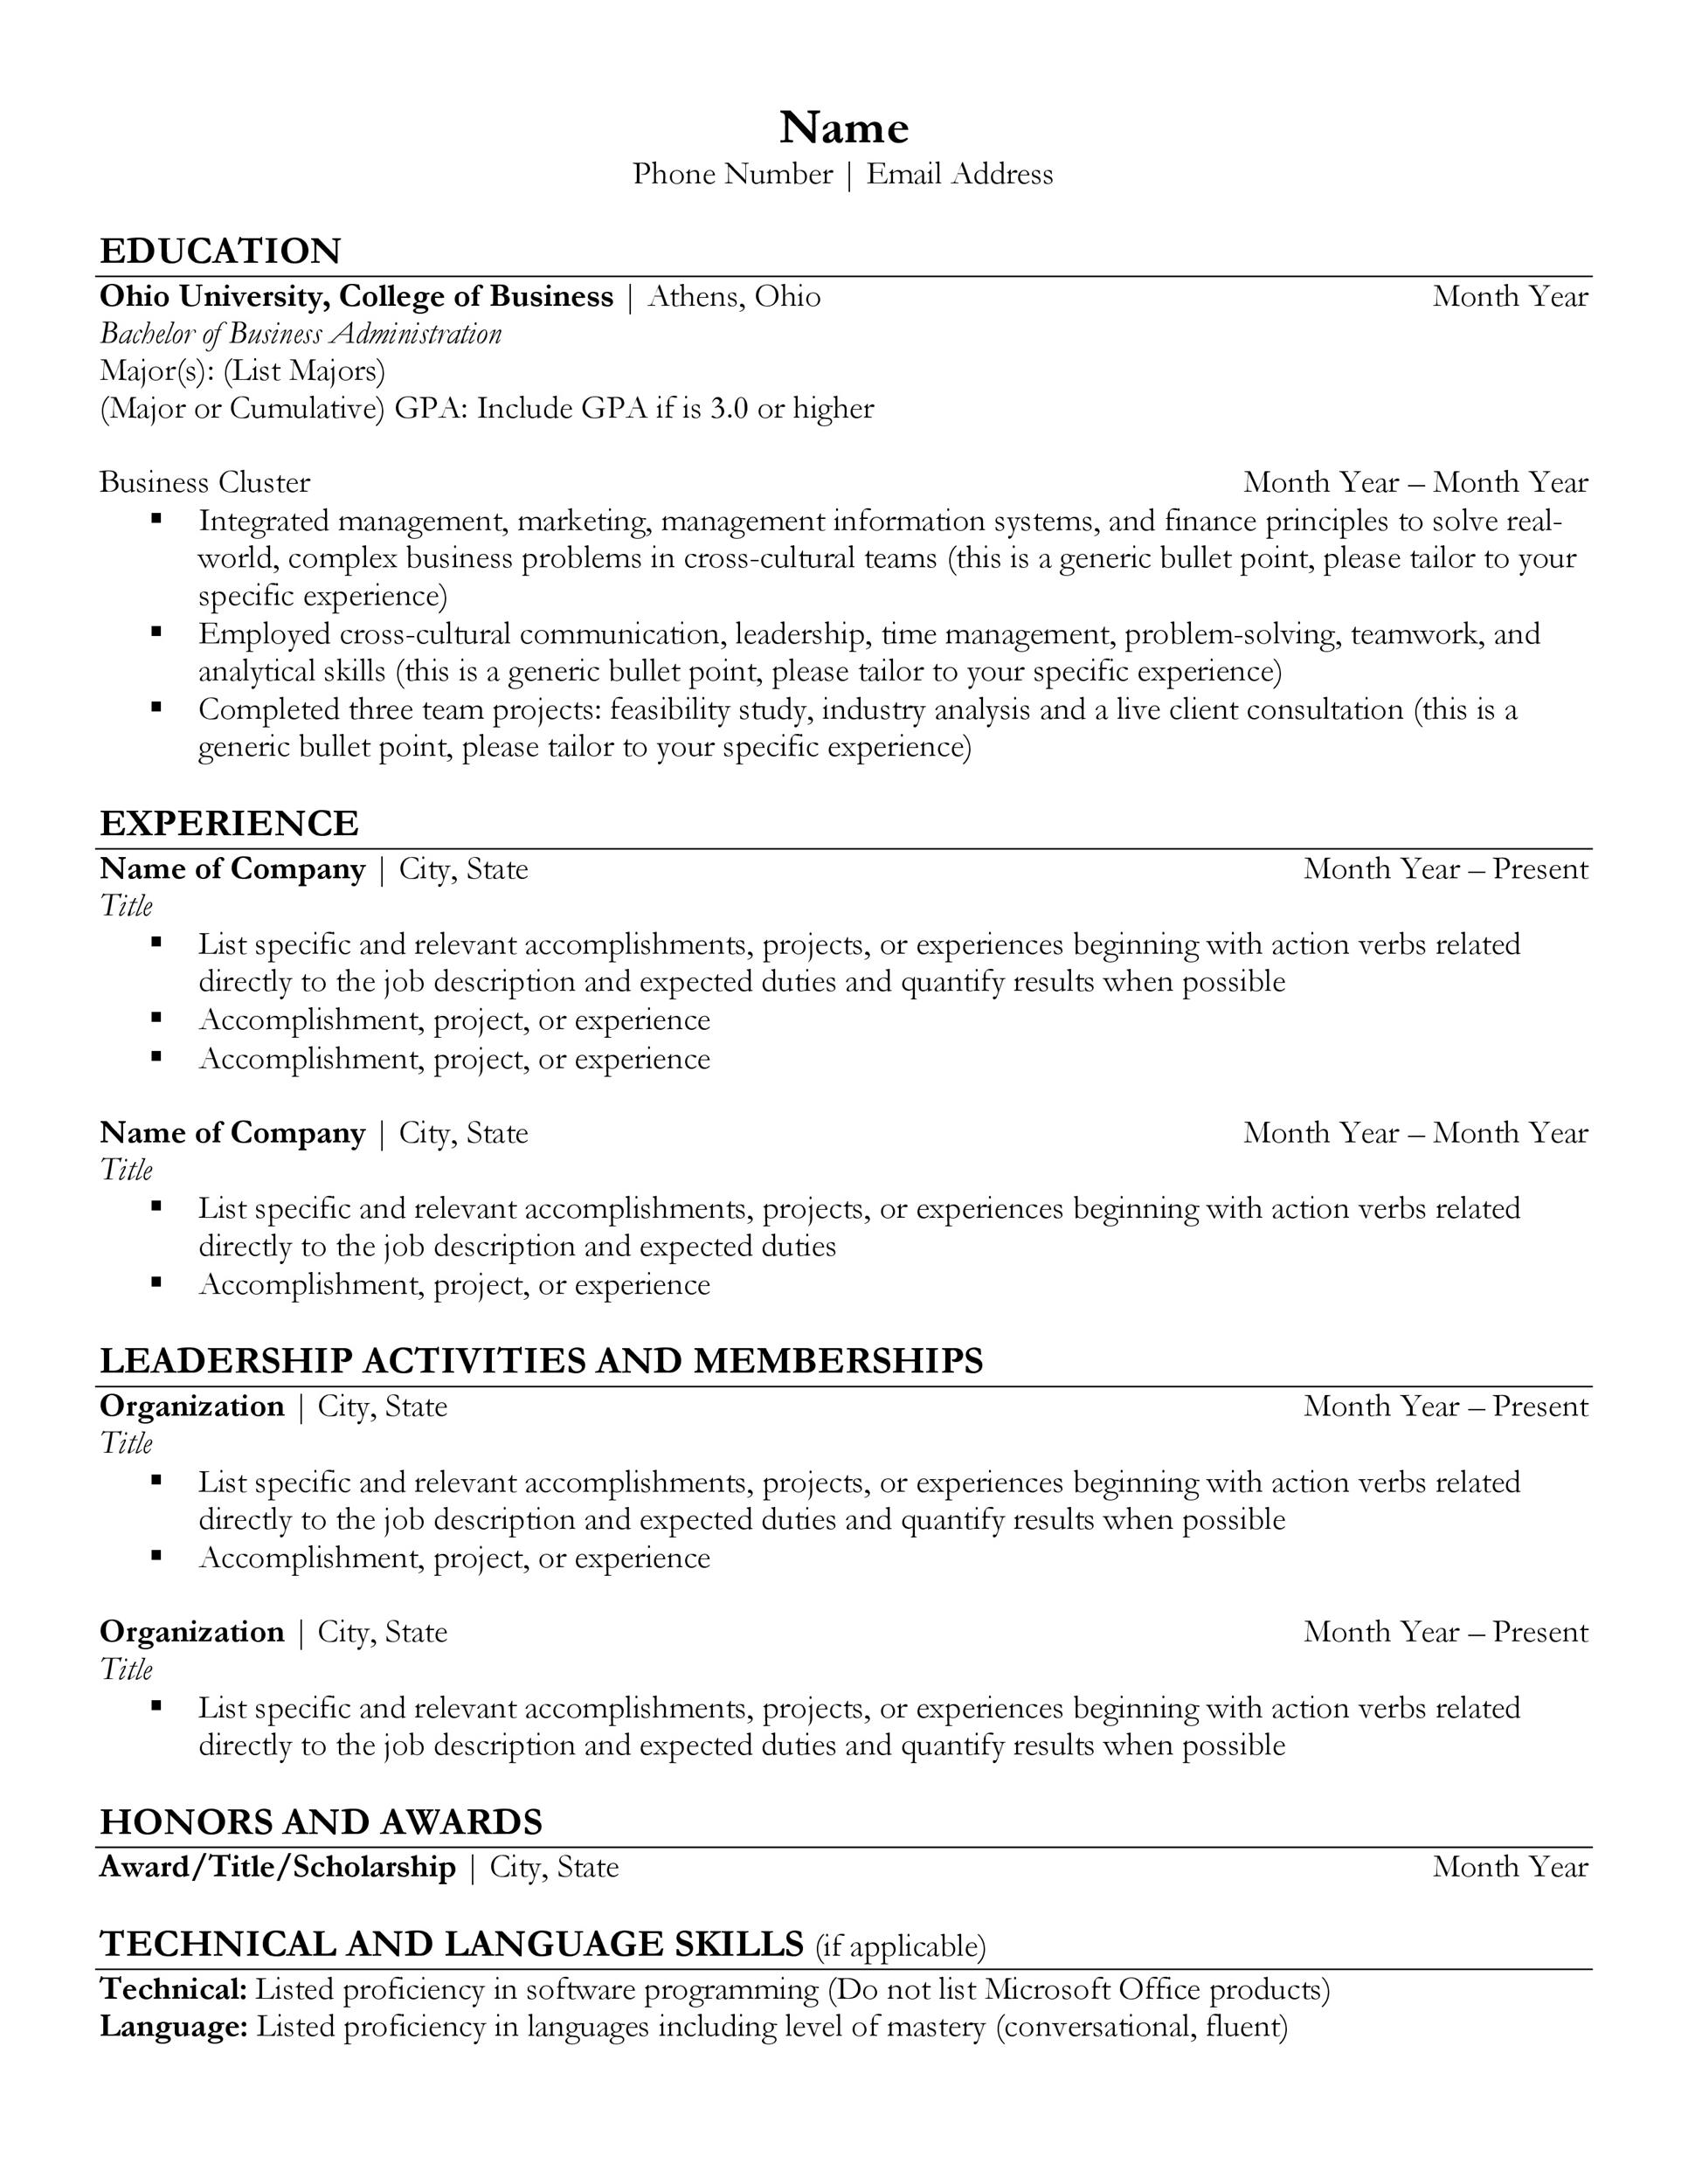 Free college resume template 42